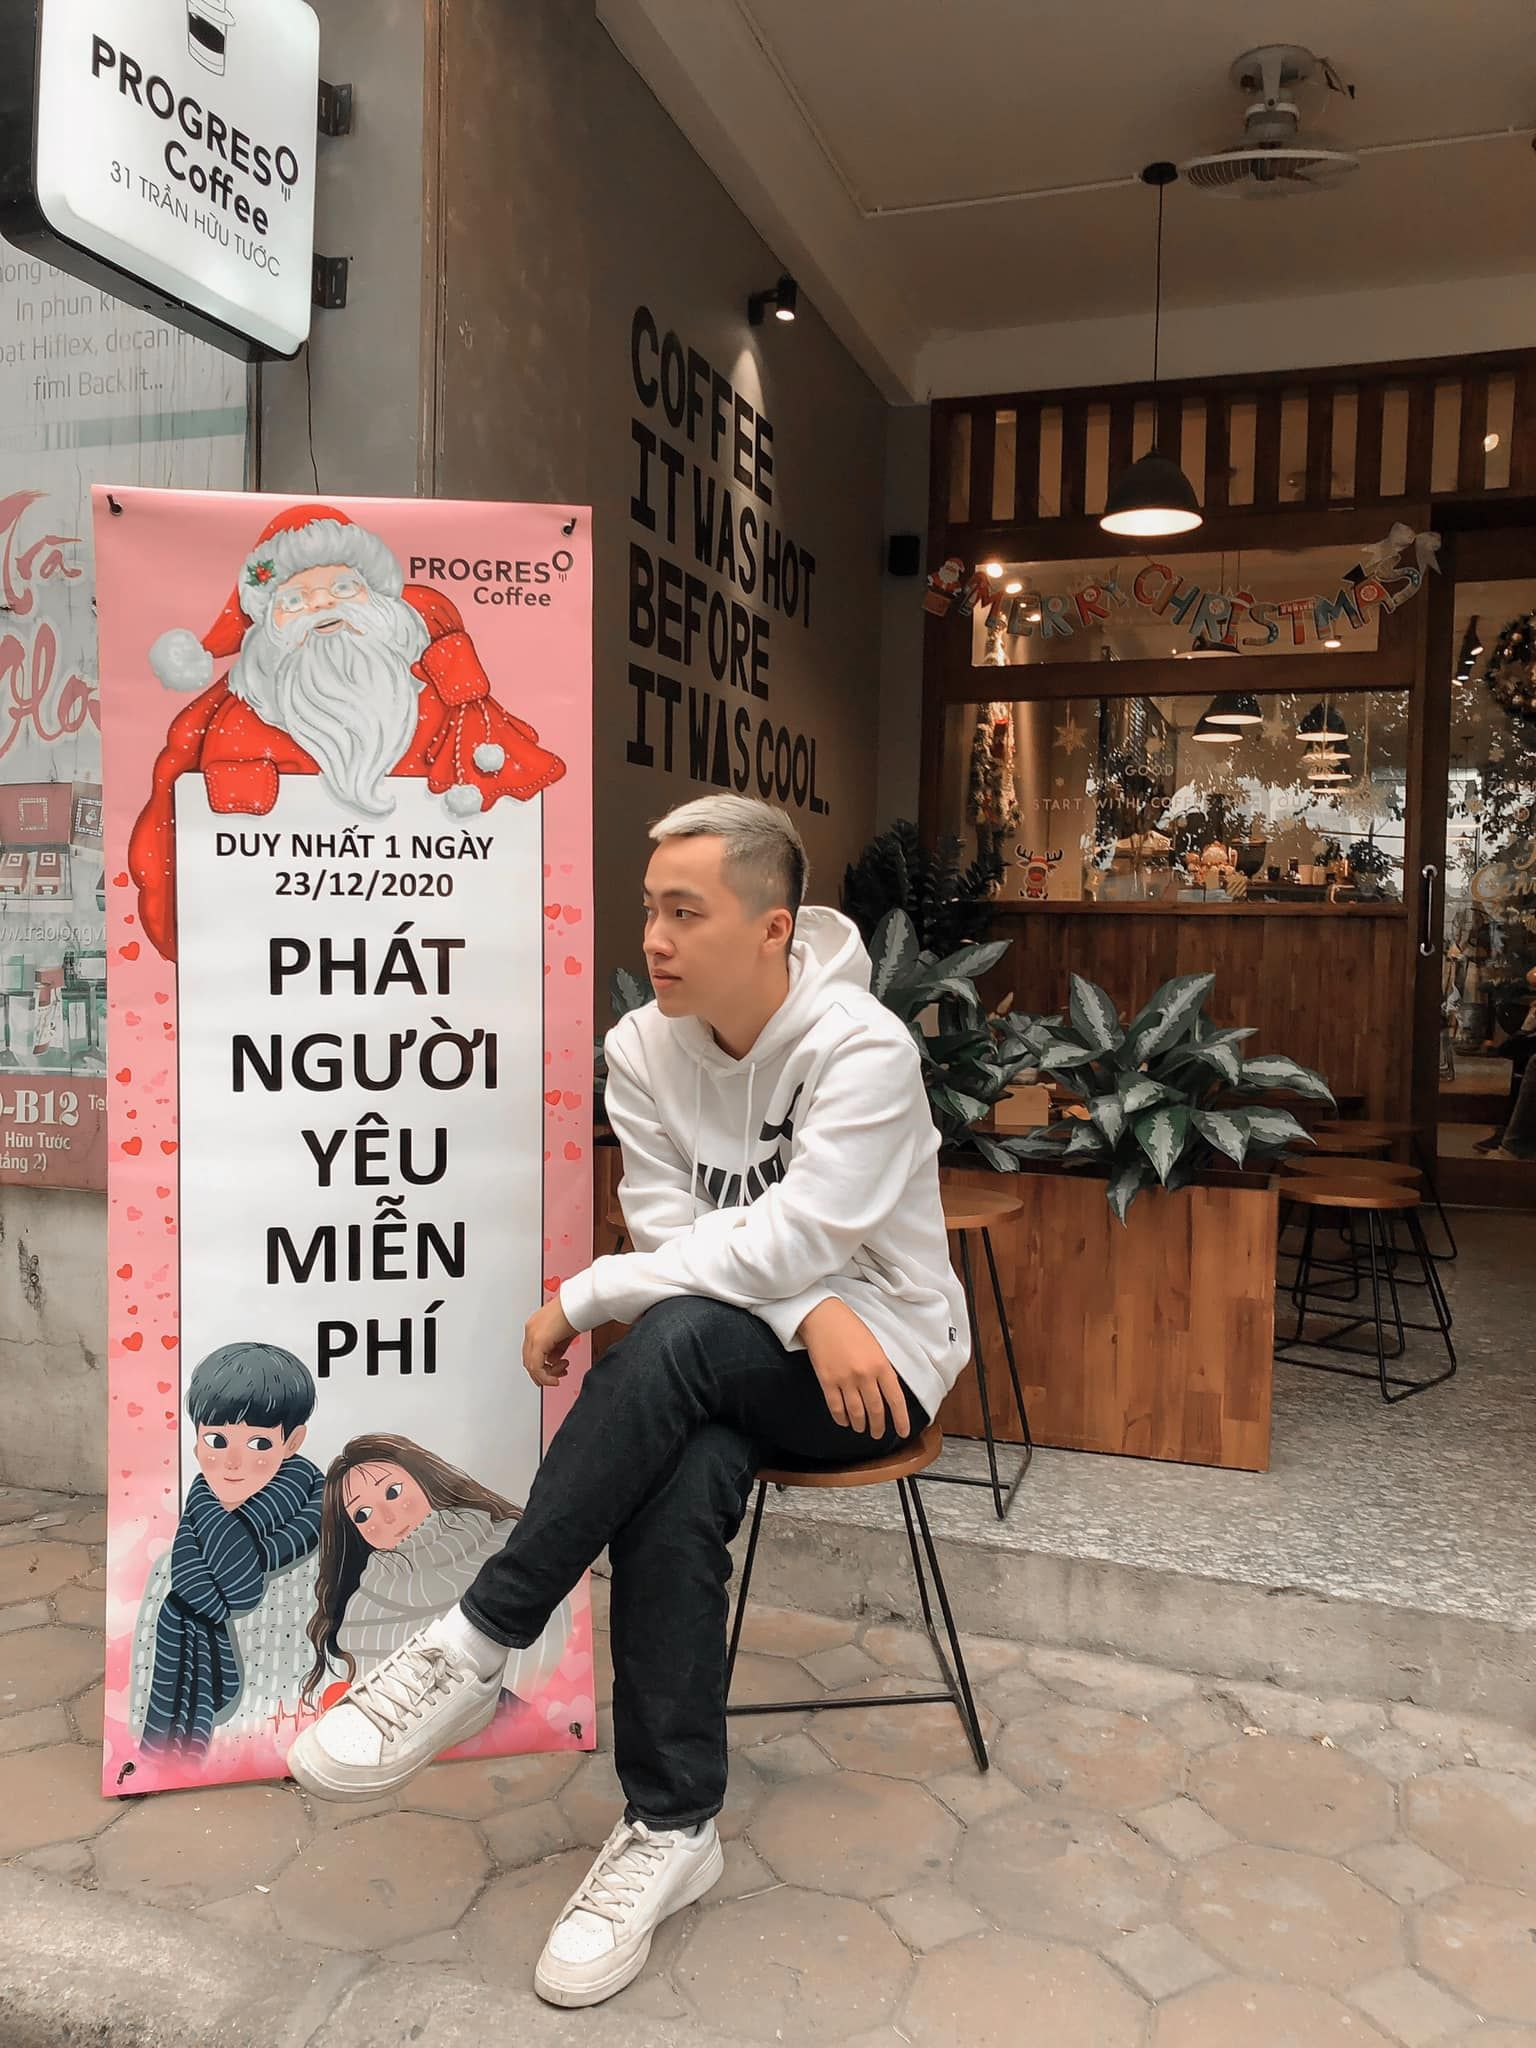 ghim vao tim tao do quancafephat nguoi yeumien phi trung ngay dip noel - anh 1